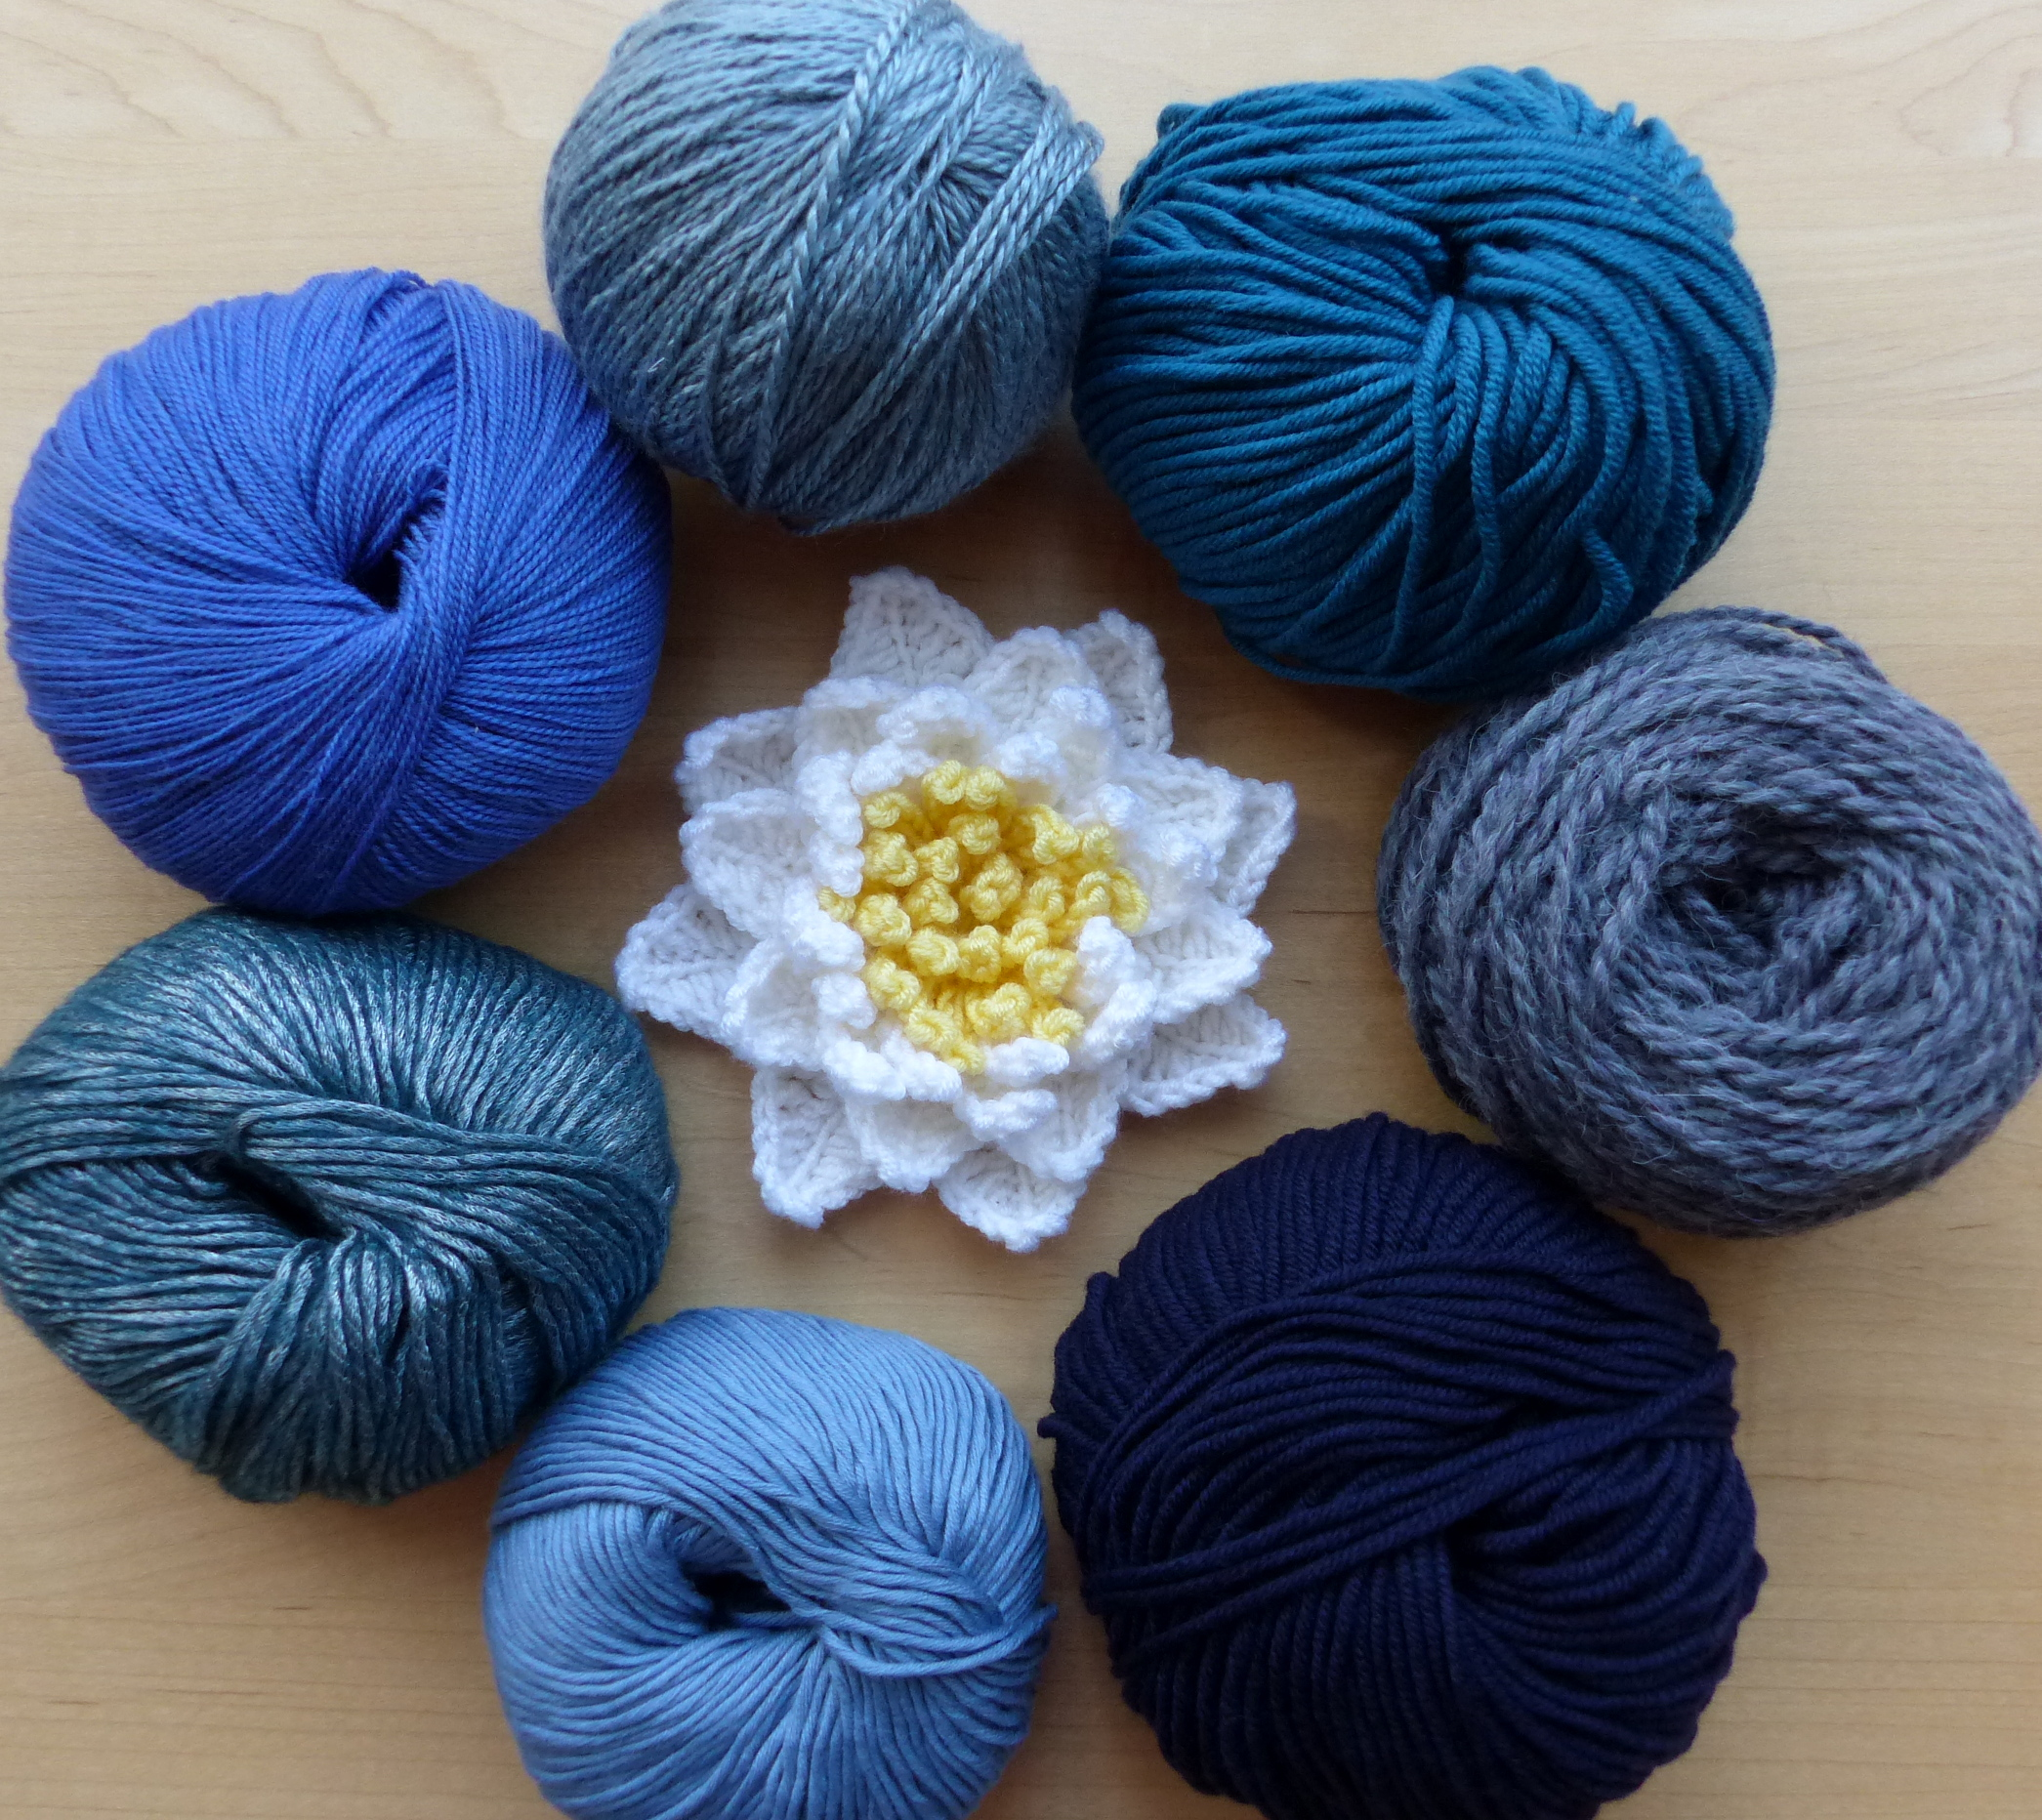 How To Design Crochet Patterns Part 4 Selecting Yarn